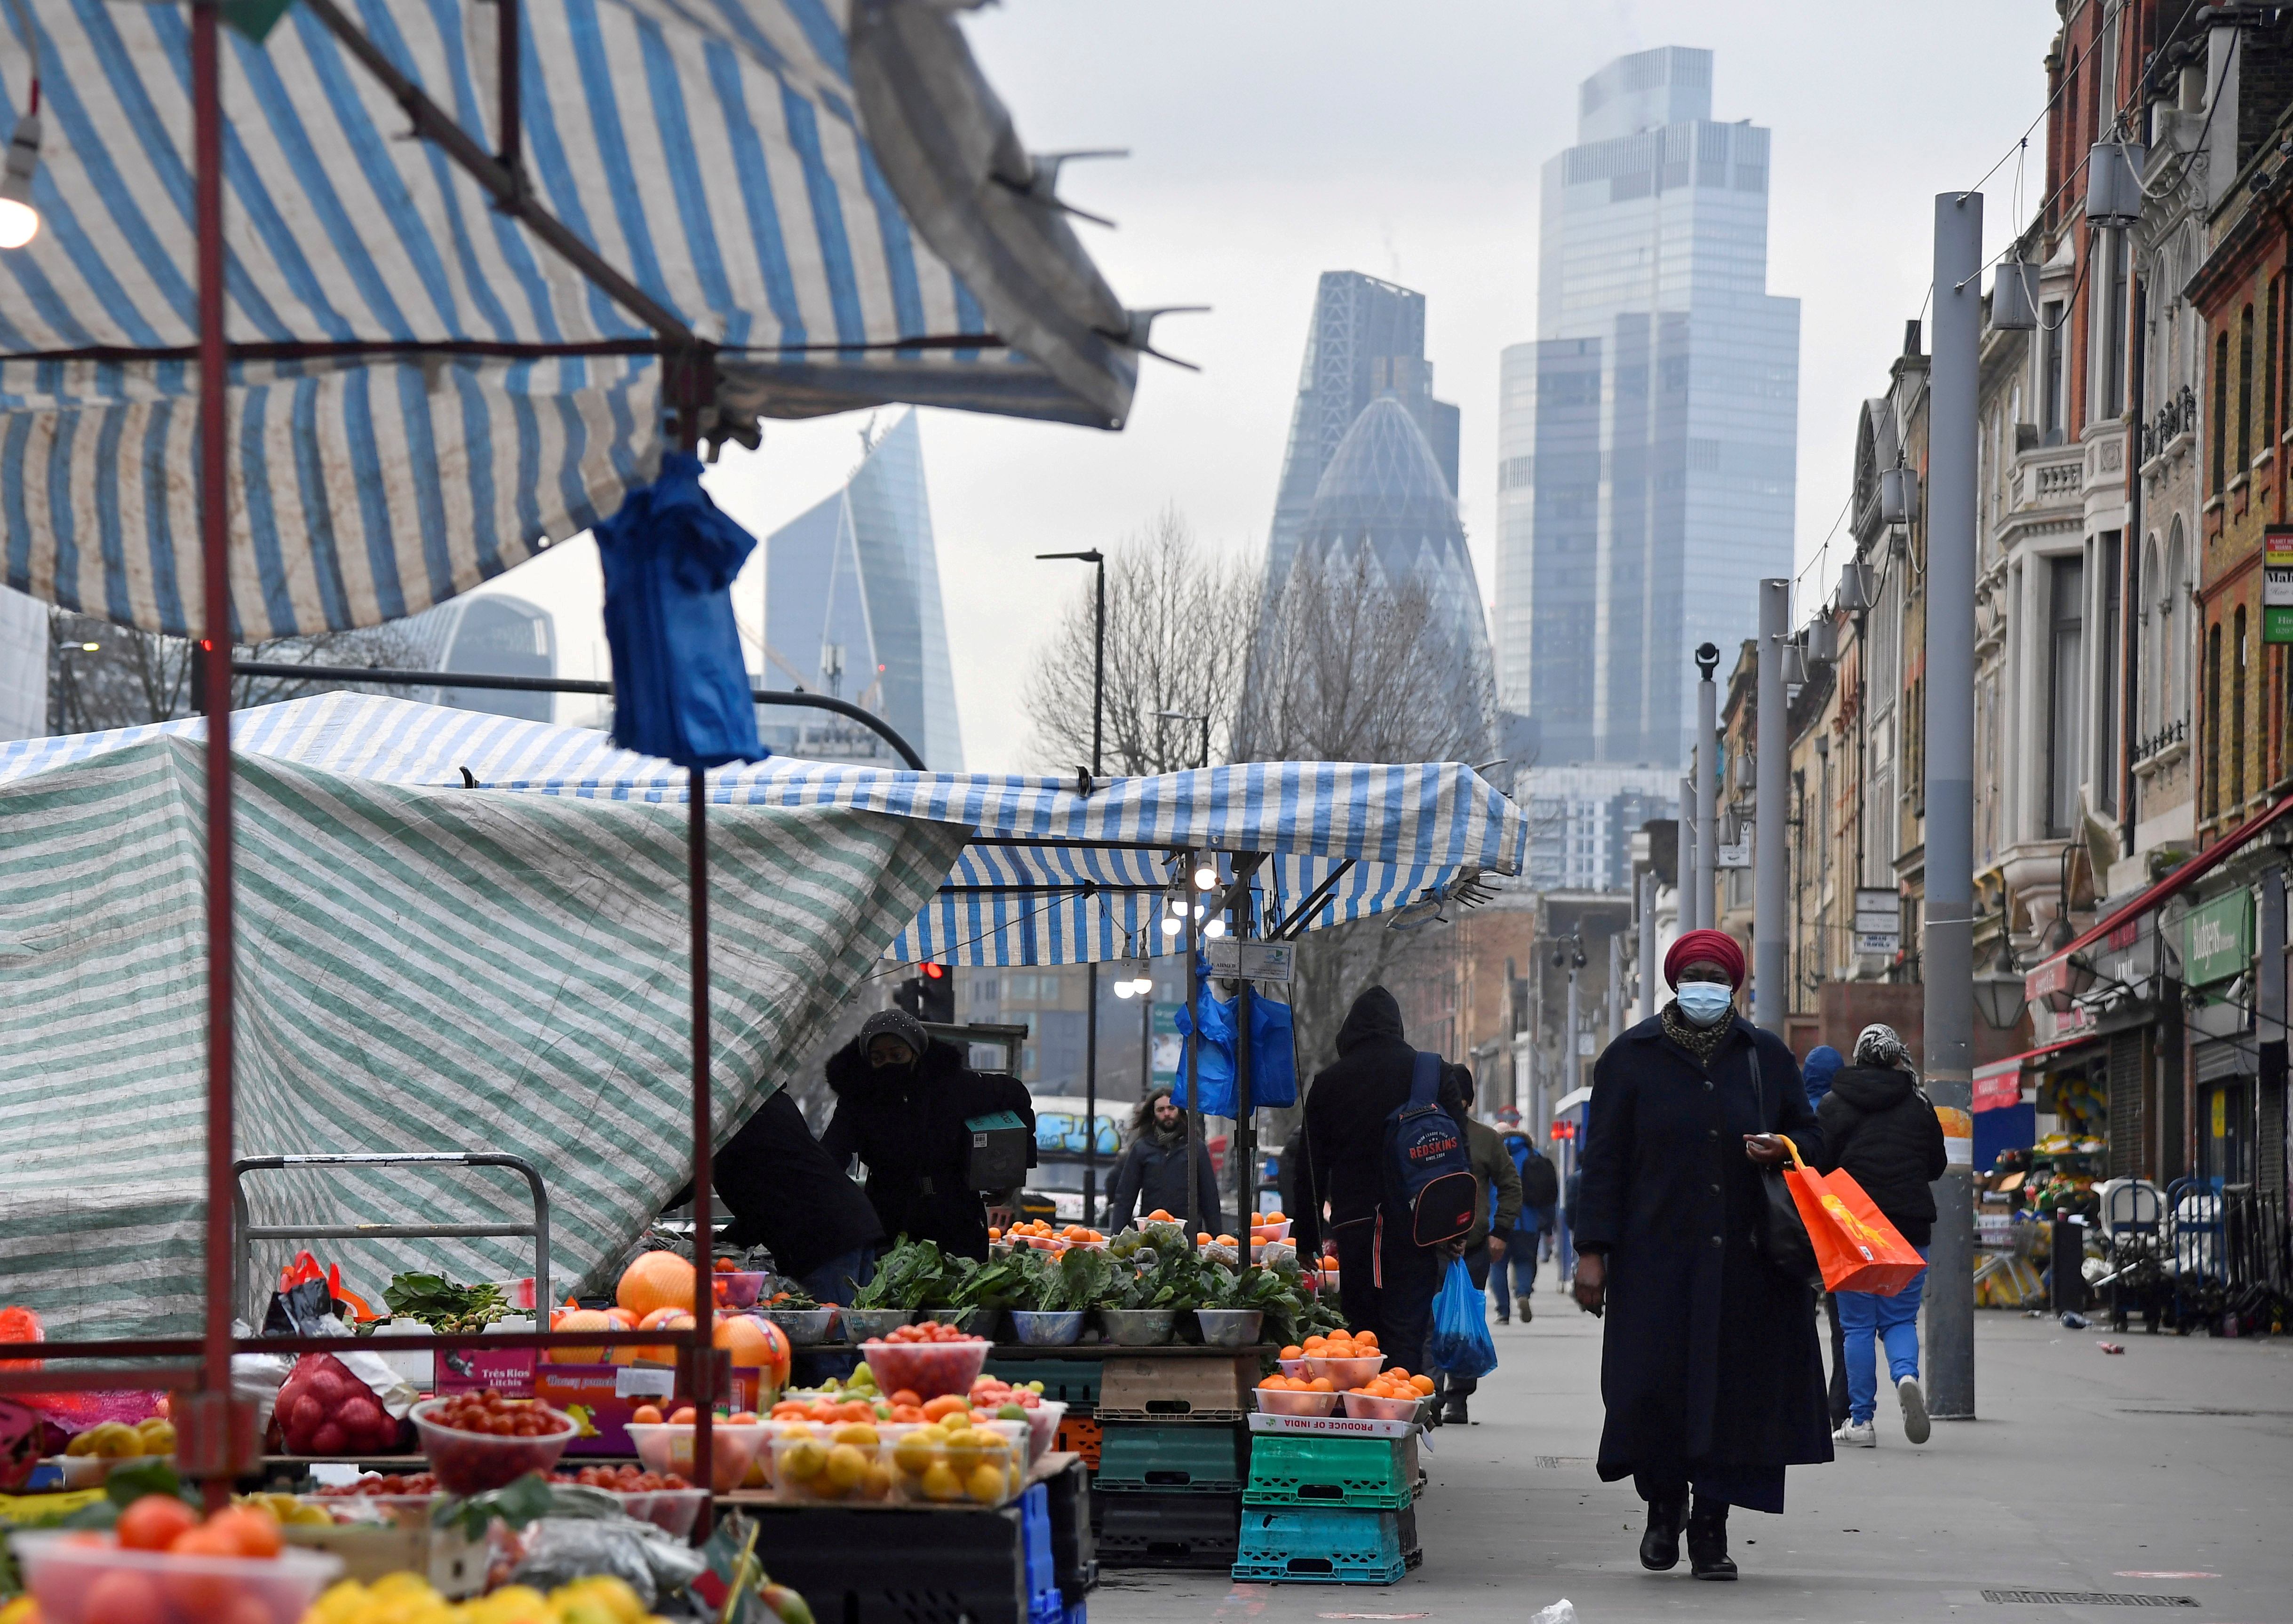 People shop at market stalls, with skyscrapers of the CIty of London financial district seen behind, amid the coronavirus disease (COVID-19) pandemic, in London, Britain, January 15, 2021. REUTERS/Toby Melville/Files